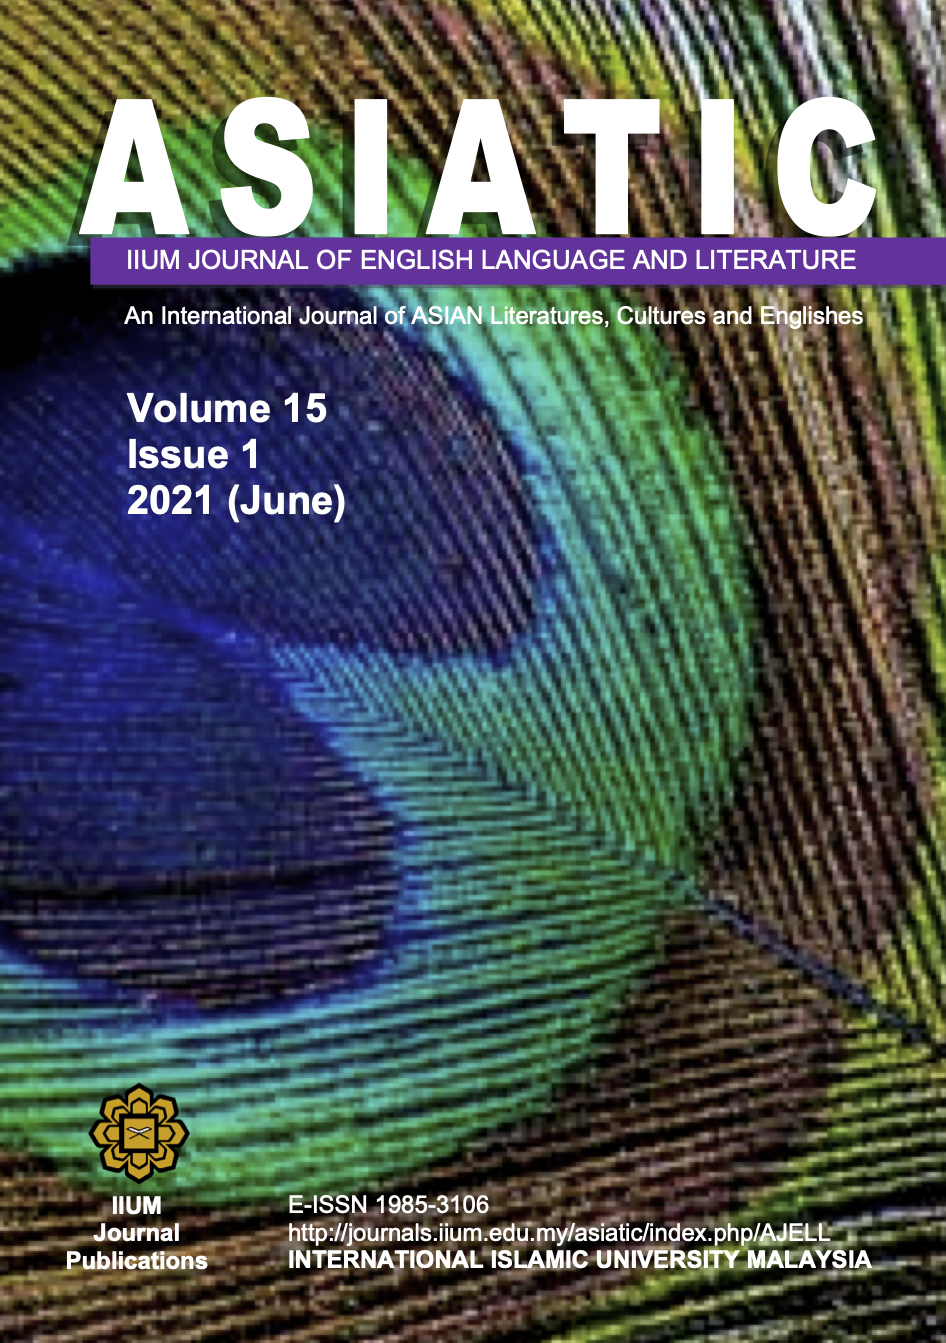 View Vol. 15 No. 1 (2021): Special Issue on Digital Trends in Language and Literature: Asia and the 21st Century